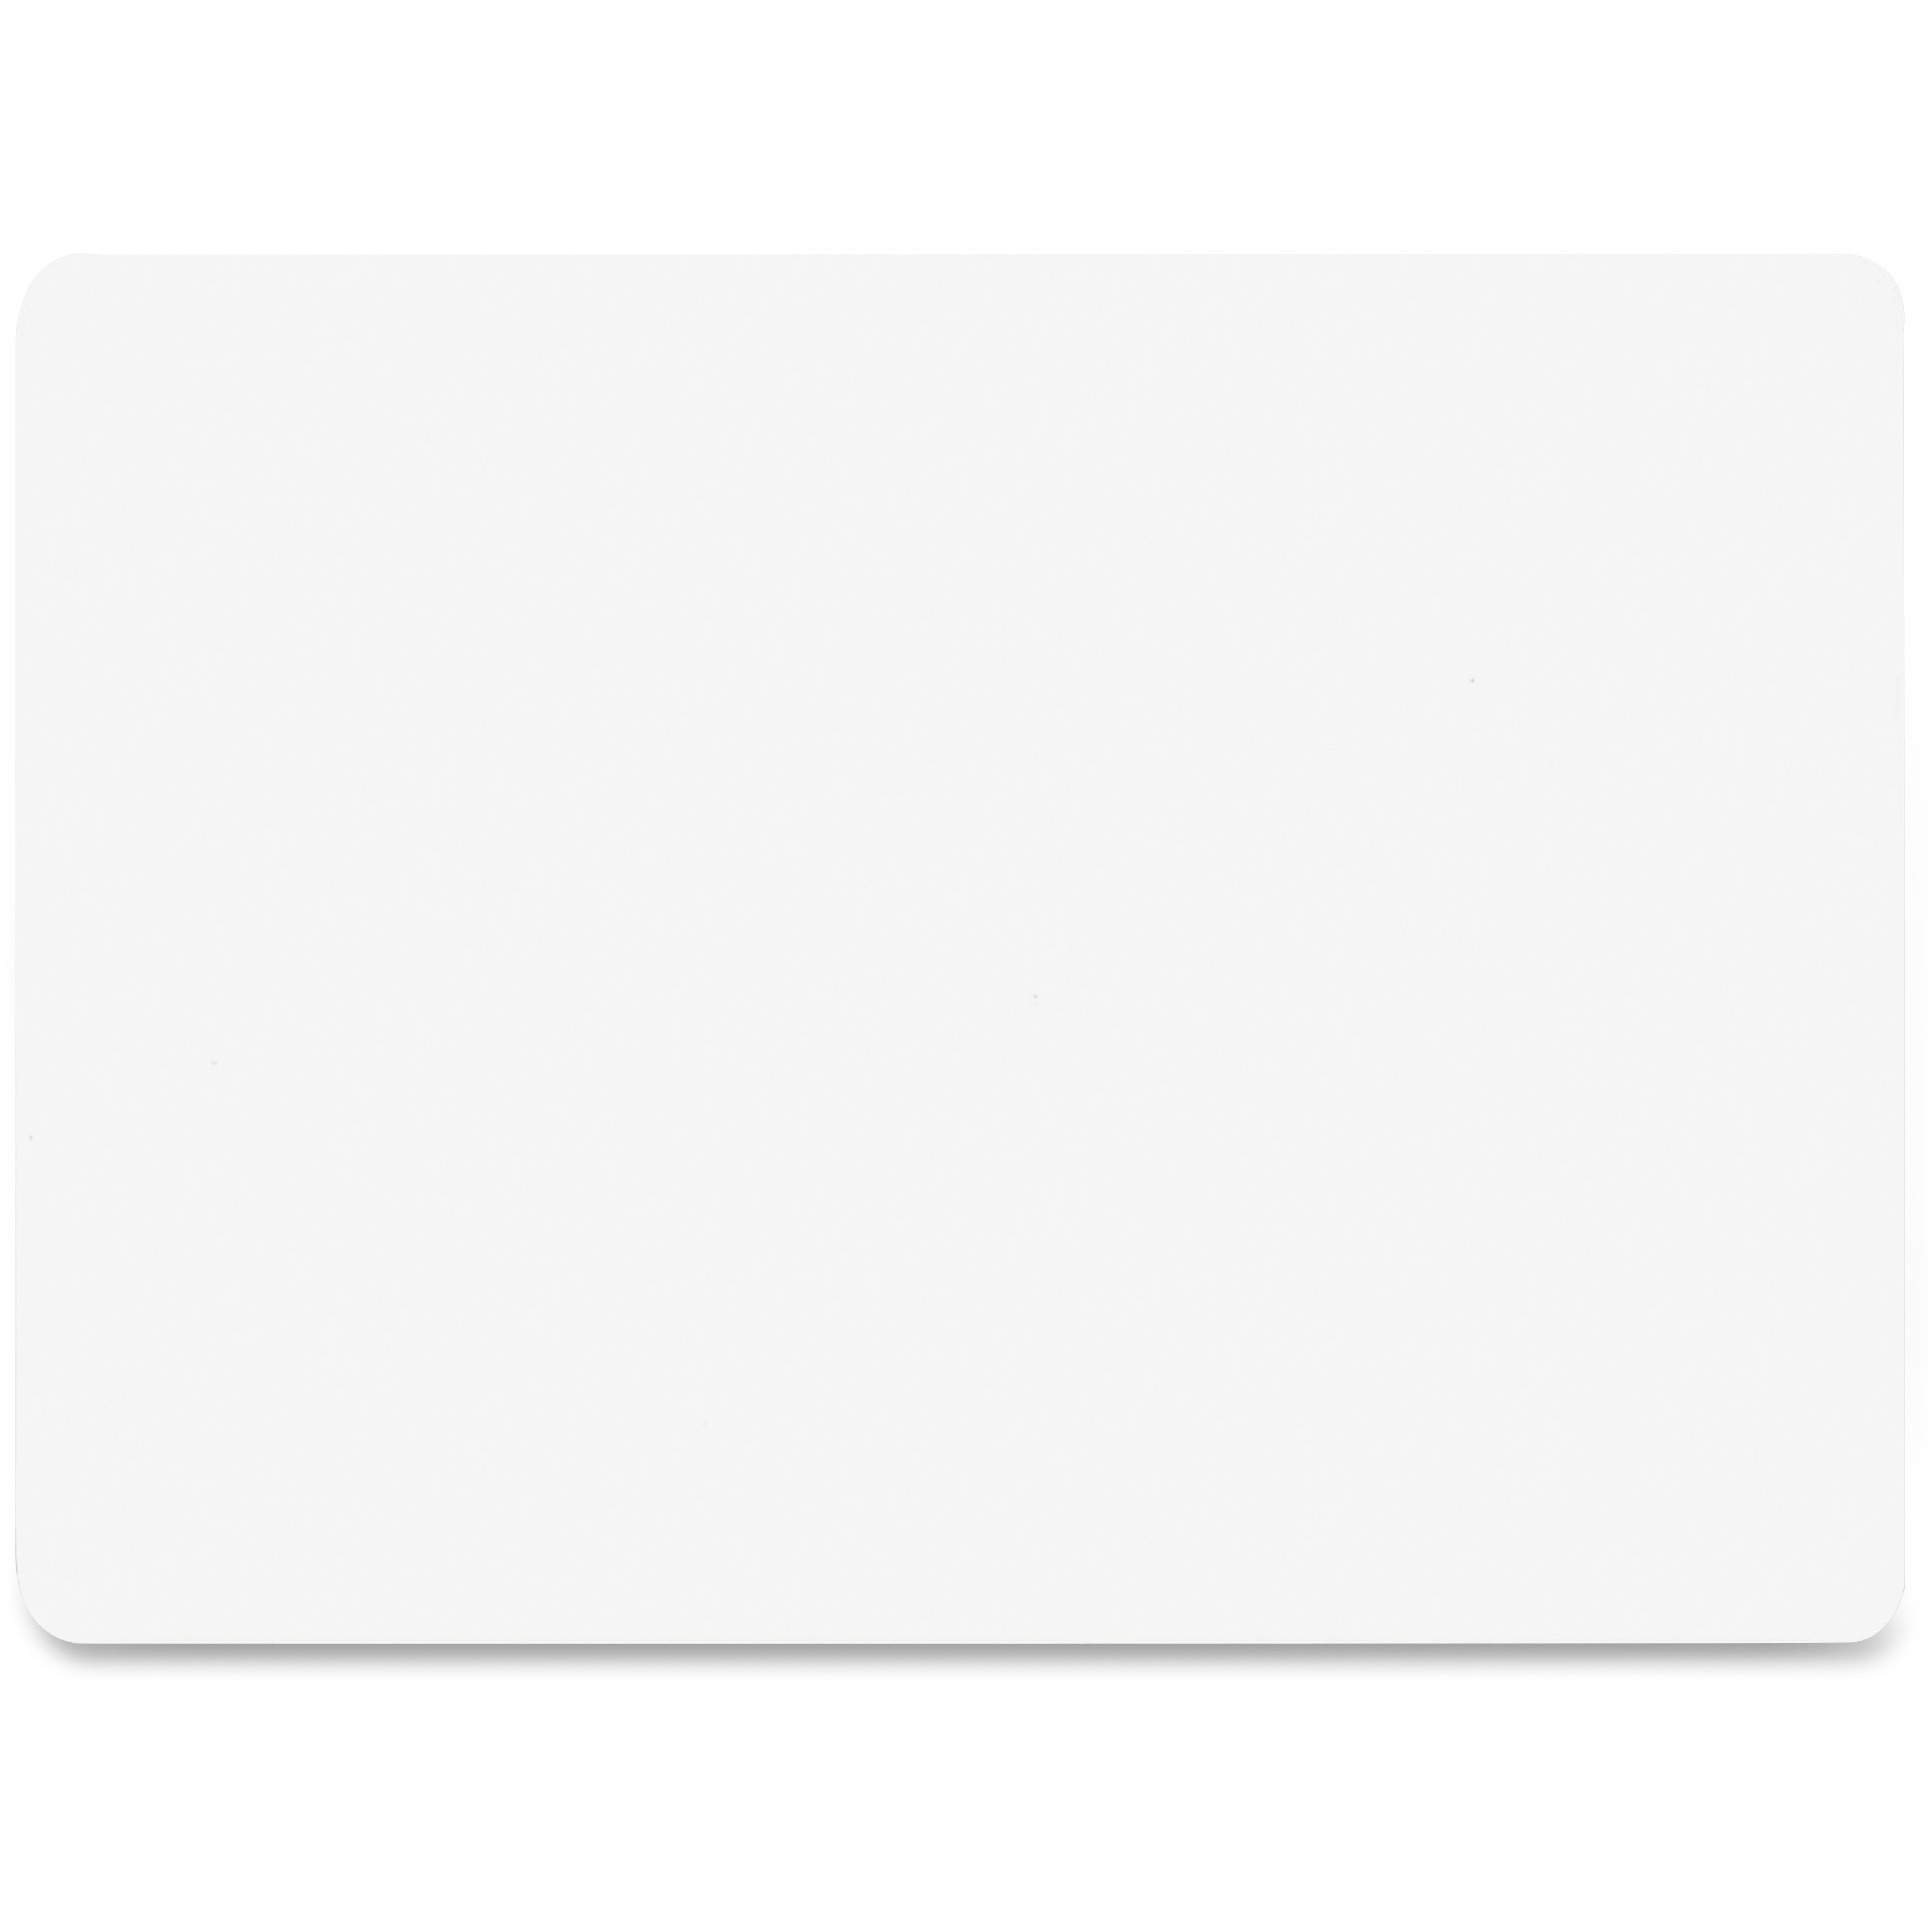 Flipside Unframed Dry Erase Board Set, 1 Each (Quantity) by Flipside Products, Inc